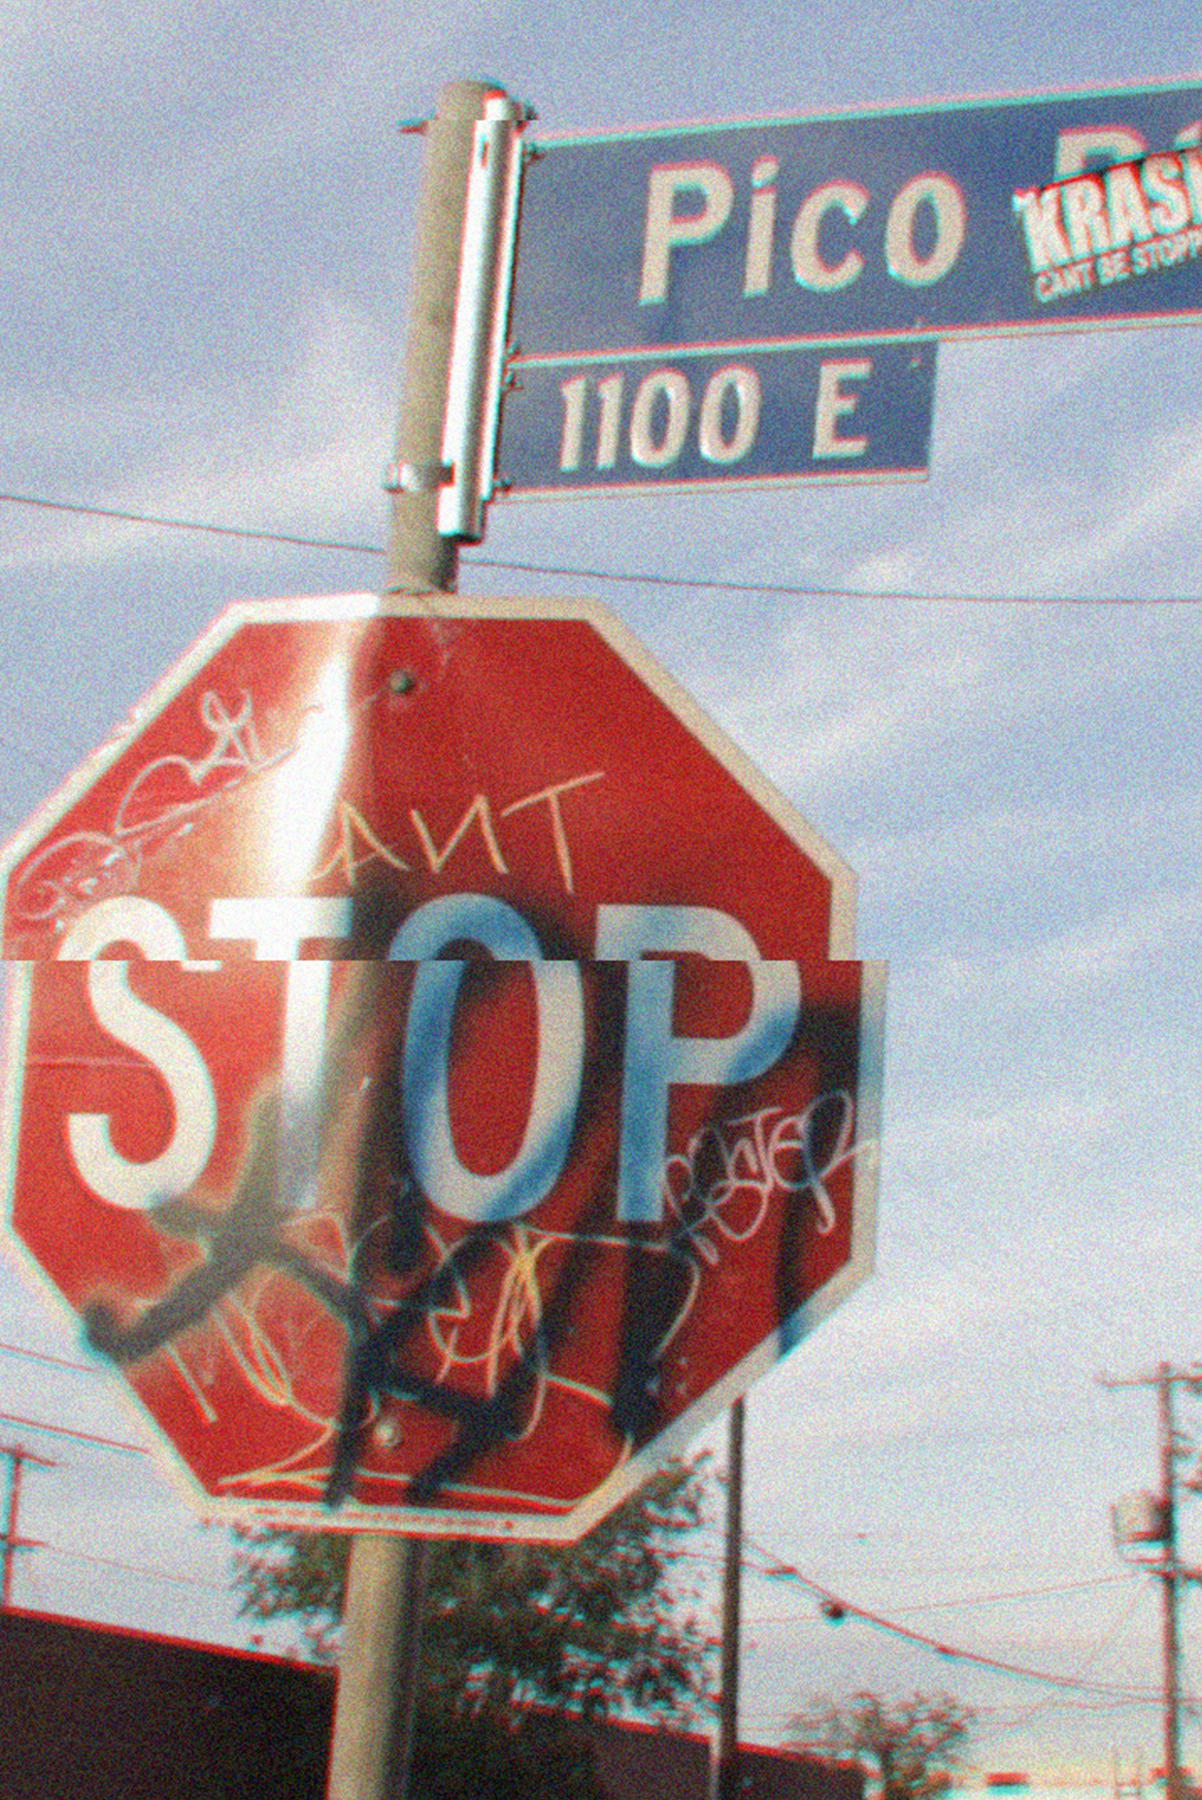 Stop sign in downtown LA near Rhude studio